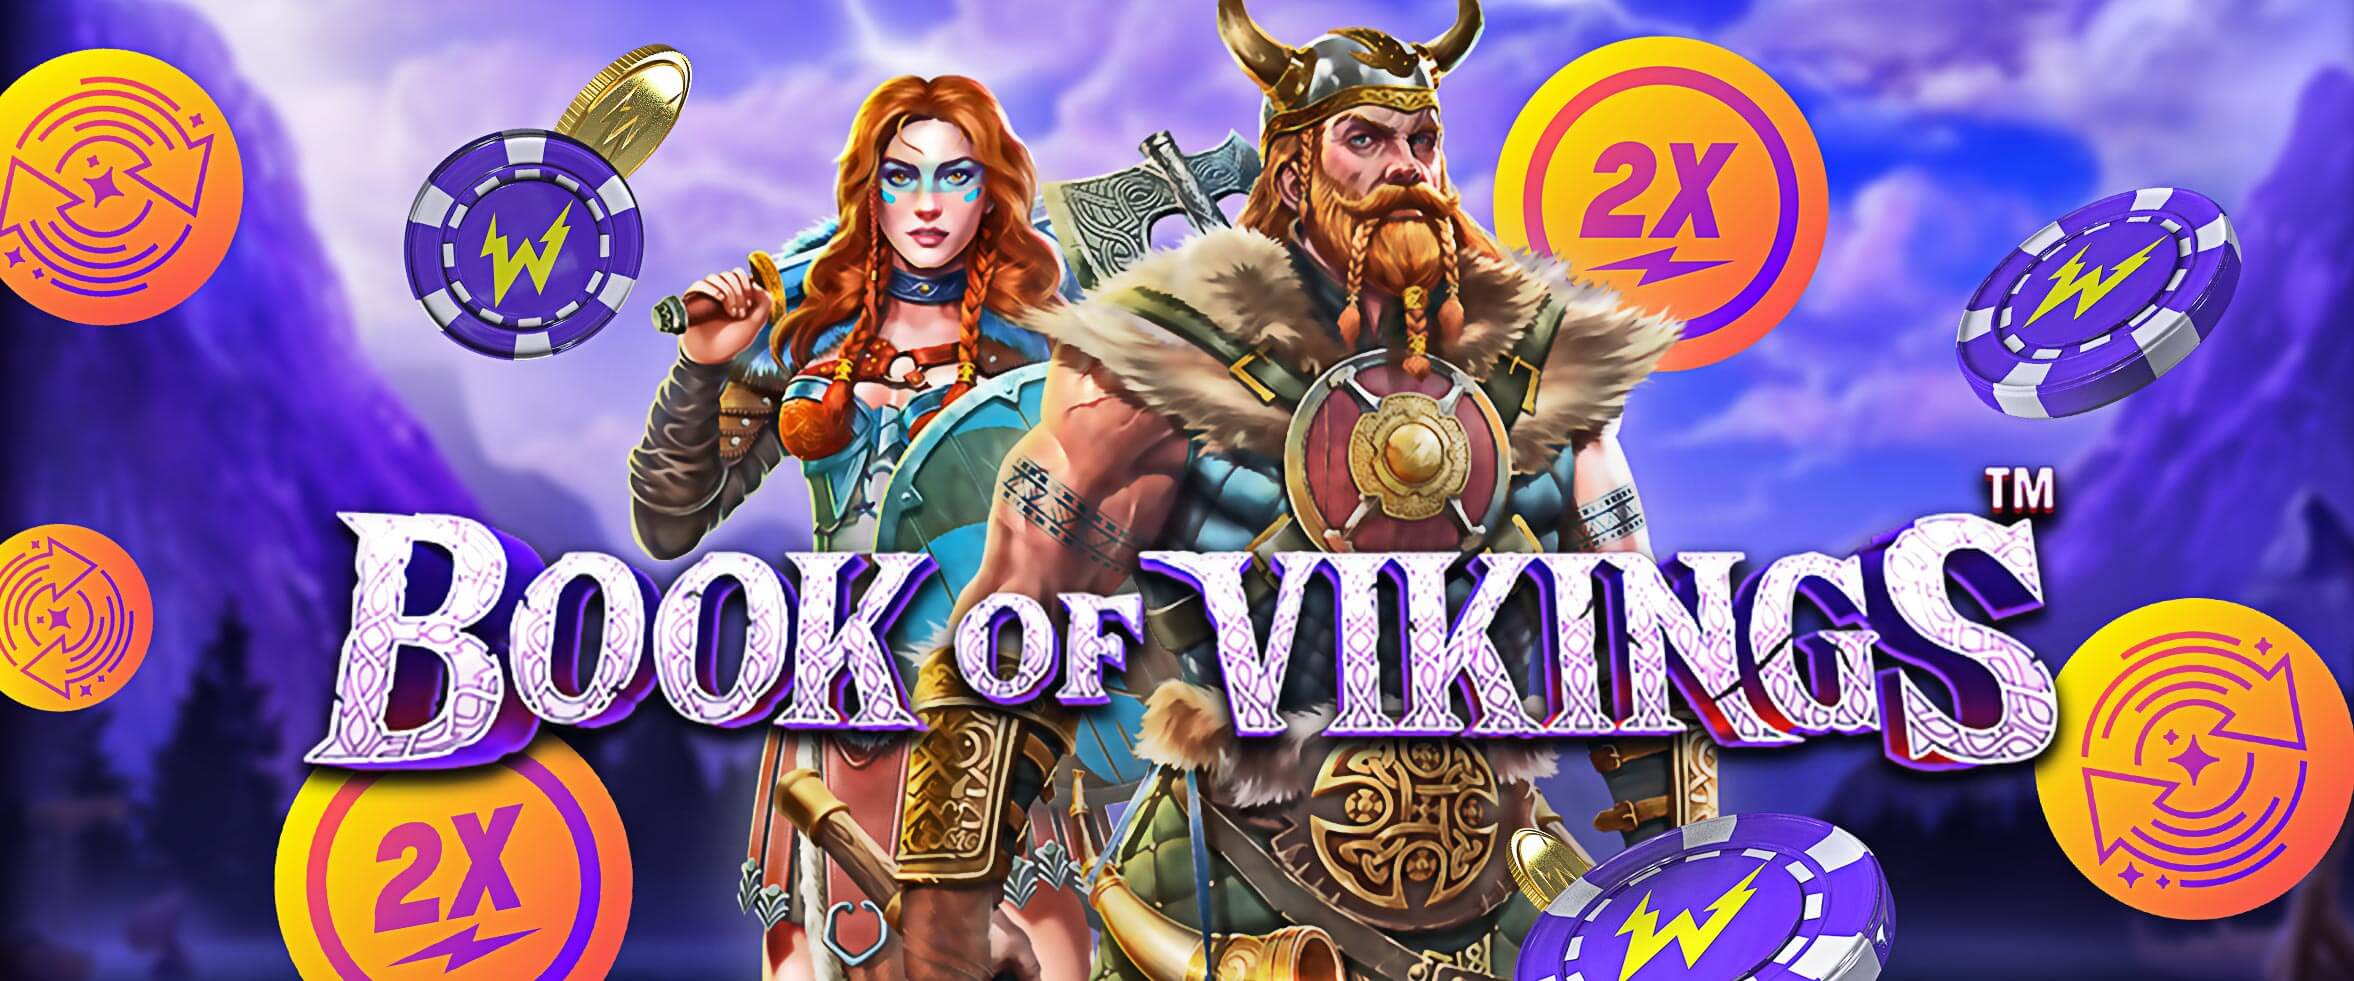 50 Freispiele plus Double Speed für den neuen Slot Book of Vikings